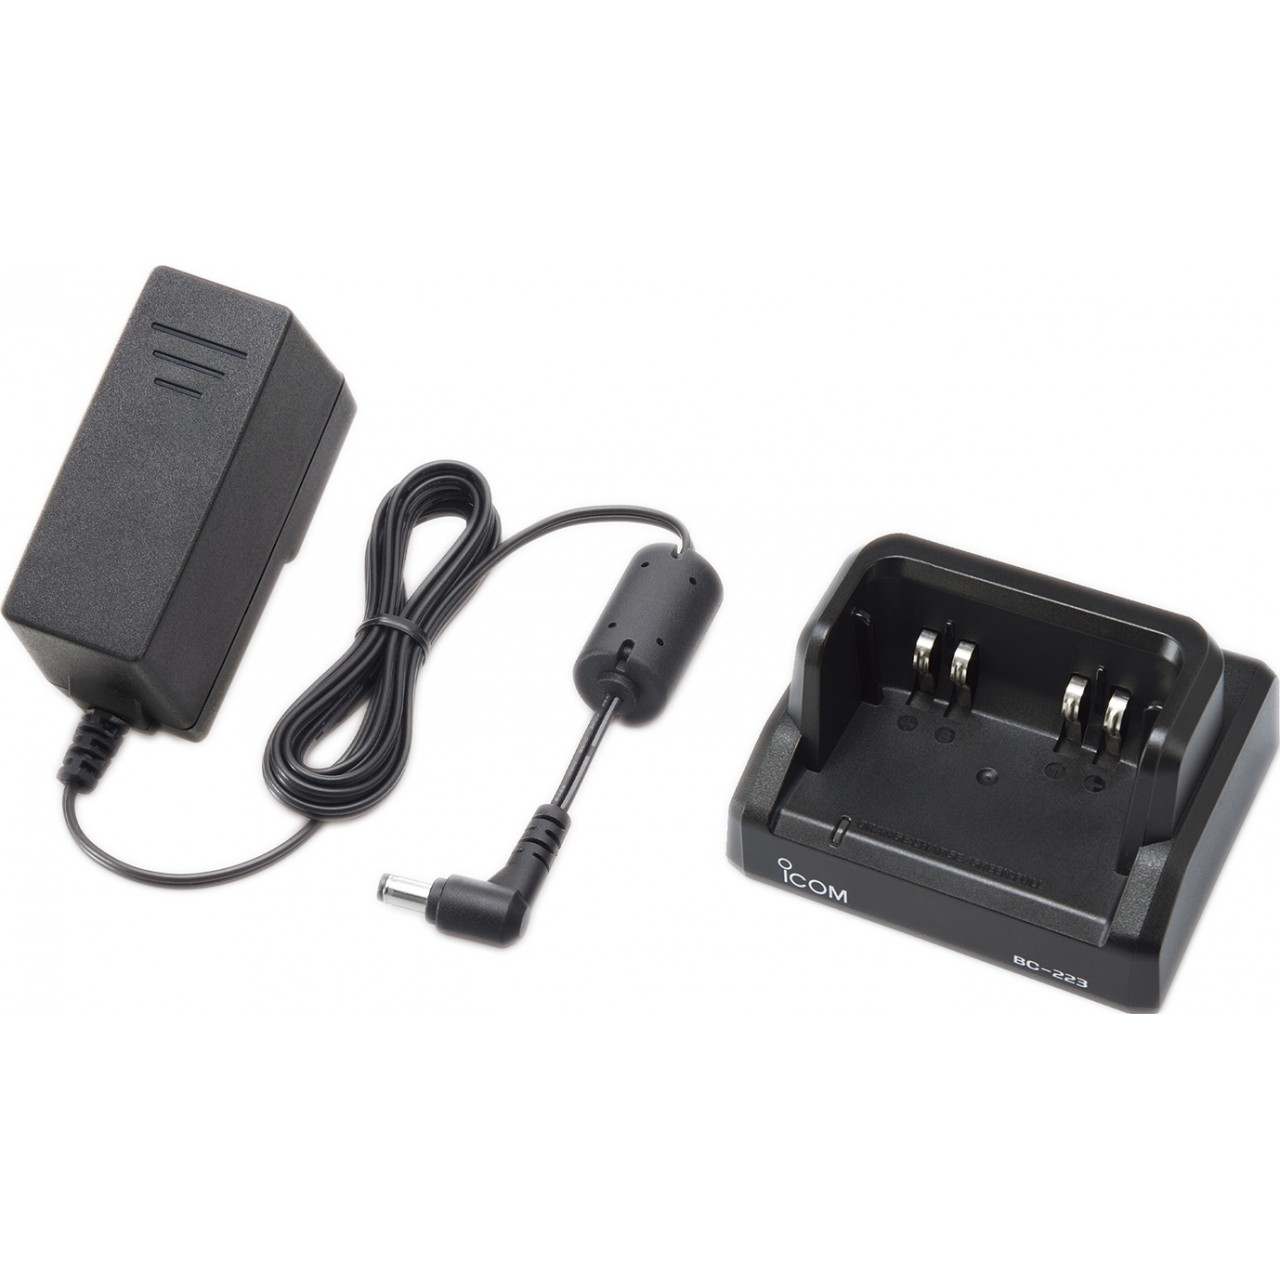 BC-223 Chargers and alimentations - ICOM